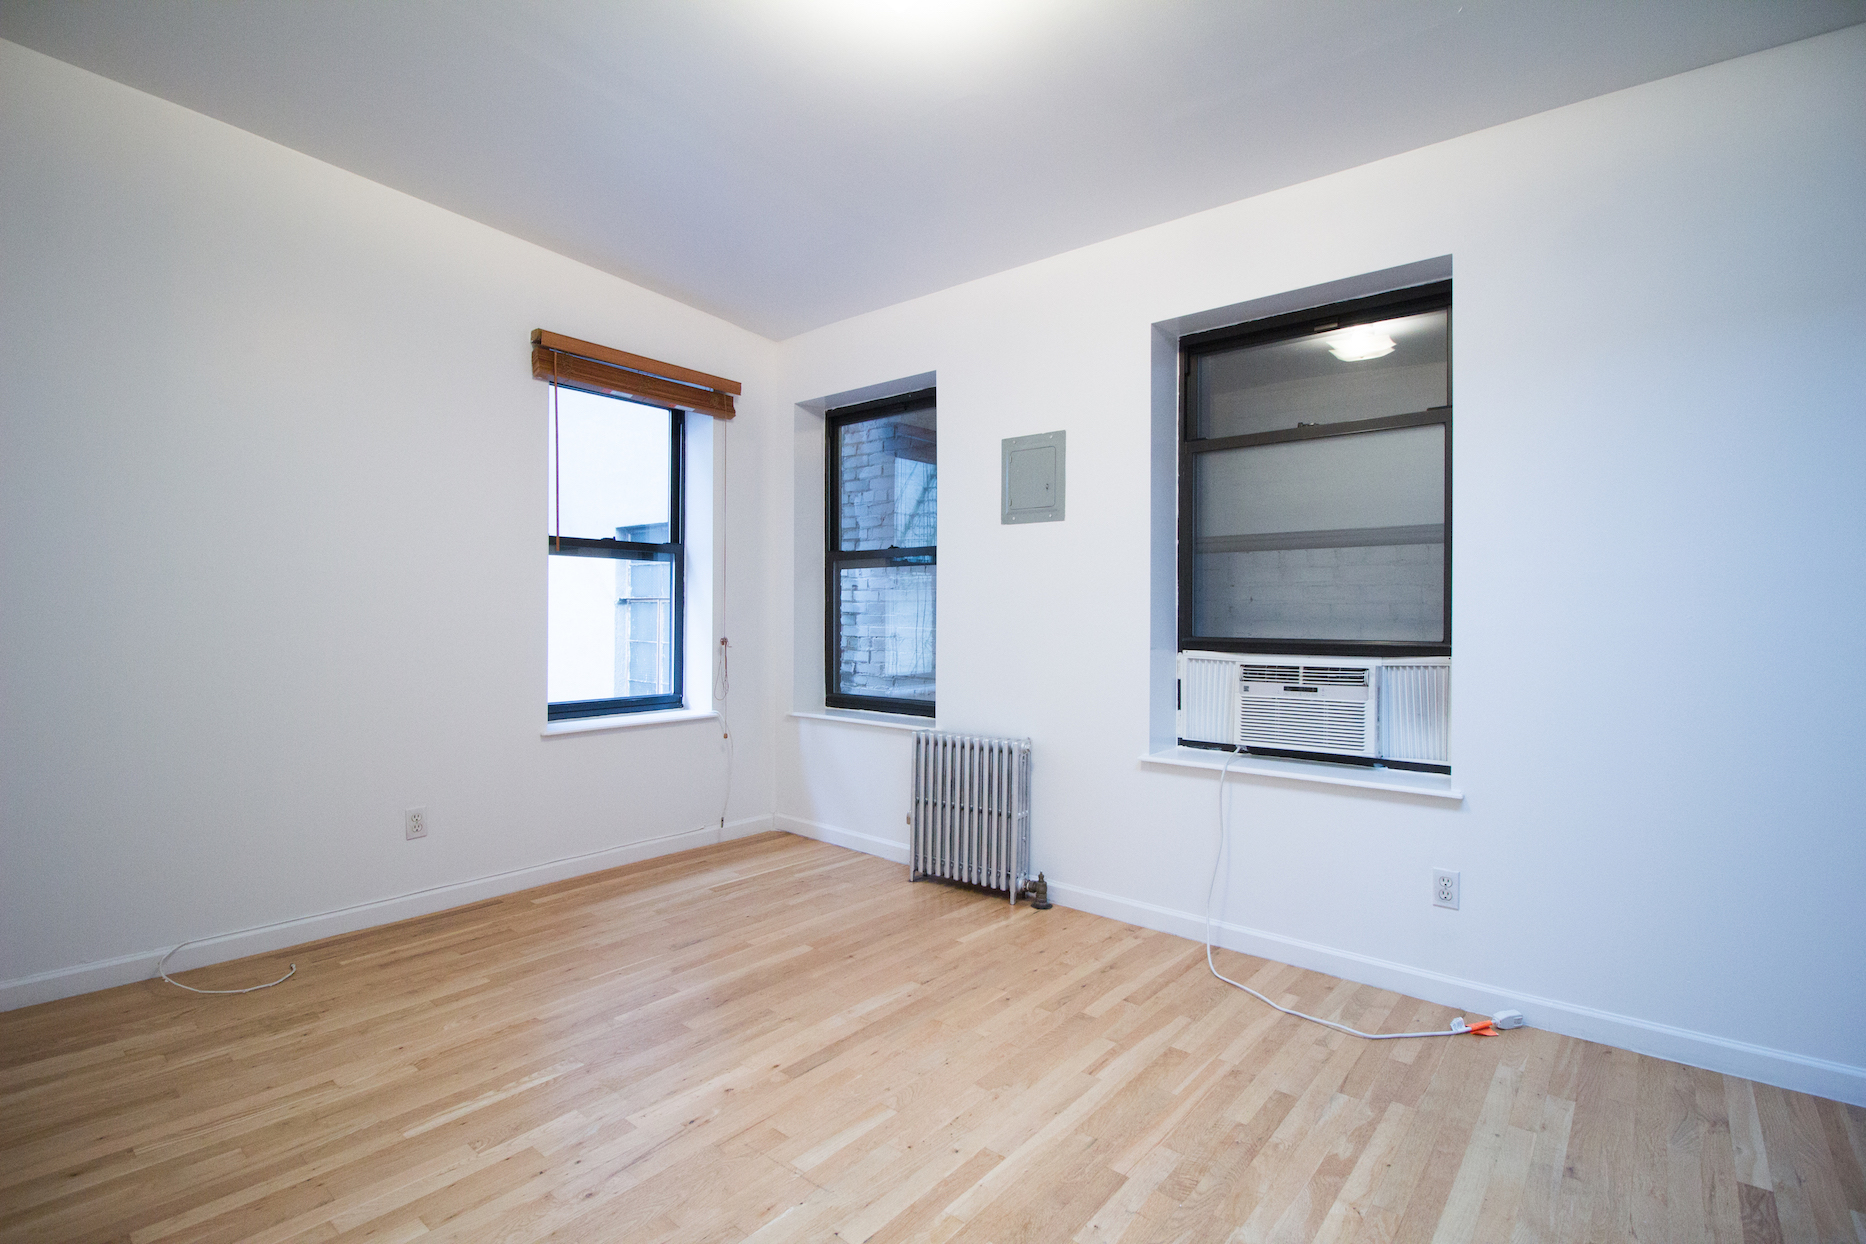 39 St. Marks Place #5 - Spacious Two Bedroom on St. Marks Place in East Village!Enjoy great size bedrooms, separate kitchen and charming exposed brick. Each bedroom fits easily queen size beds with extra furniture! Located on the fourth floor of a well maintained & secured building right on St. Marks place and 2nd Ave. Live in the prime area filled with restaurants, shops, stores, entertainment and near subway lines such as N, R, 6, L lines and other public transportation.*Pets allowed case by case* Rent: $3,295 /monthTerms: 12 - 12 MonthsAvailable: Immediate